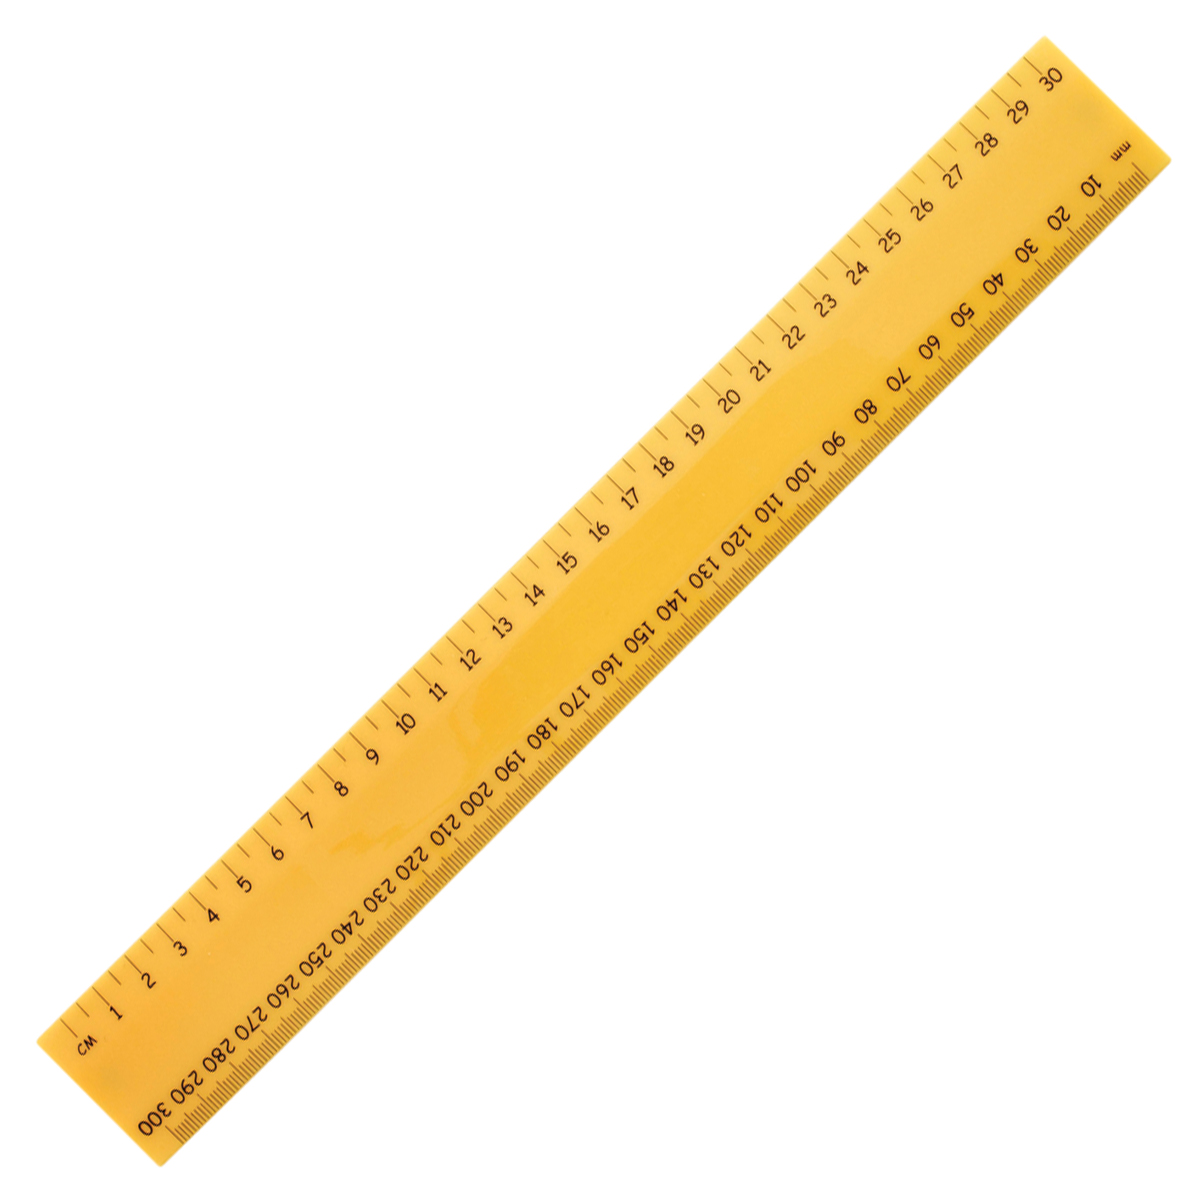 Yellow School Ruler Free Clipart Images